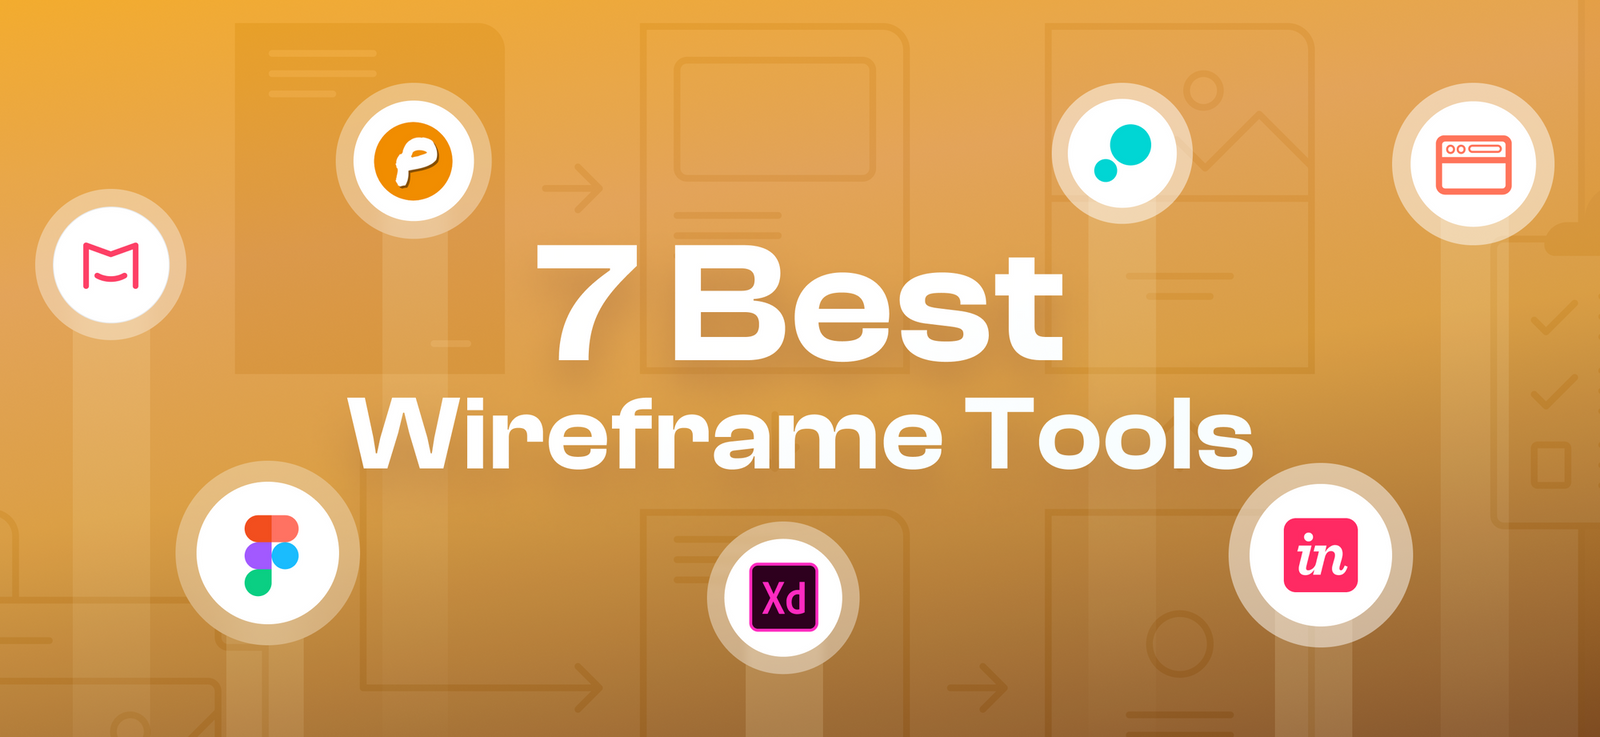 7 Best Wireframe Tools Every UI/UX Designer Should Know